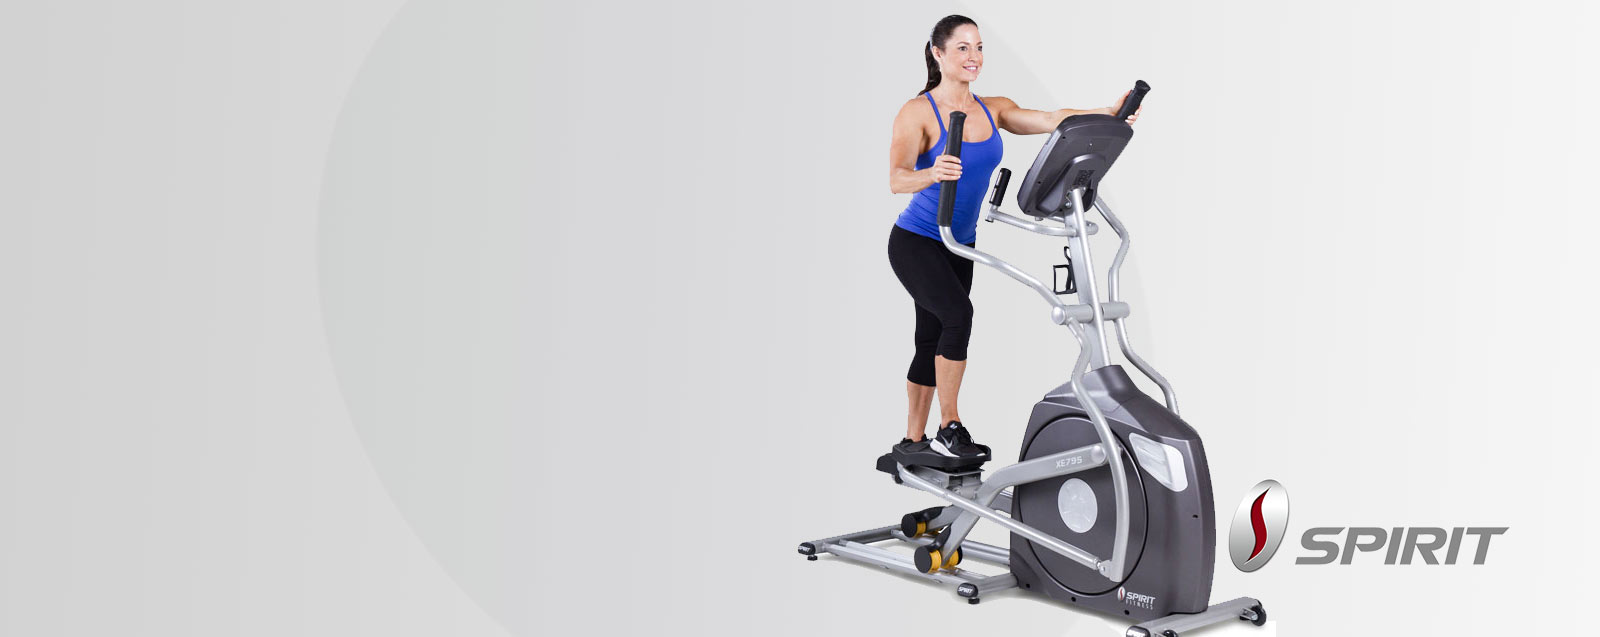 Spirit Fitness Equipment at Fitness Showrooms